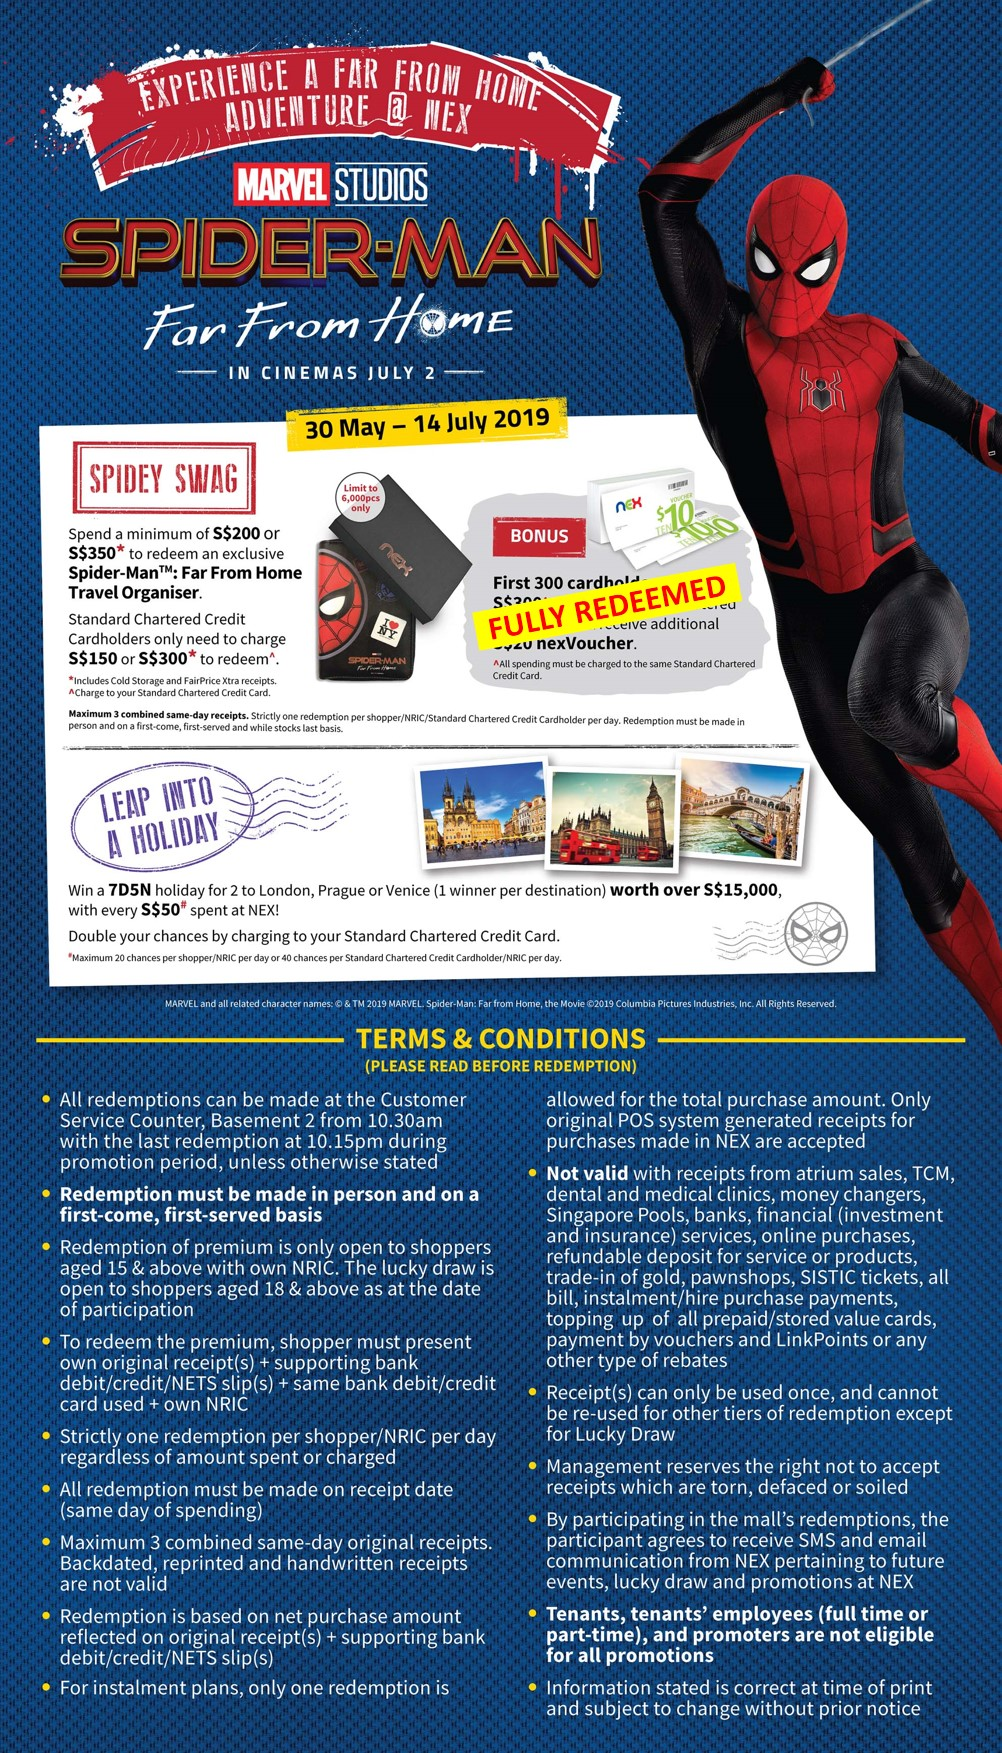 Spider-Man-Far-From-Home-Campaign-TC-FULLYREDEEMED